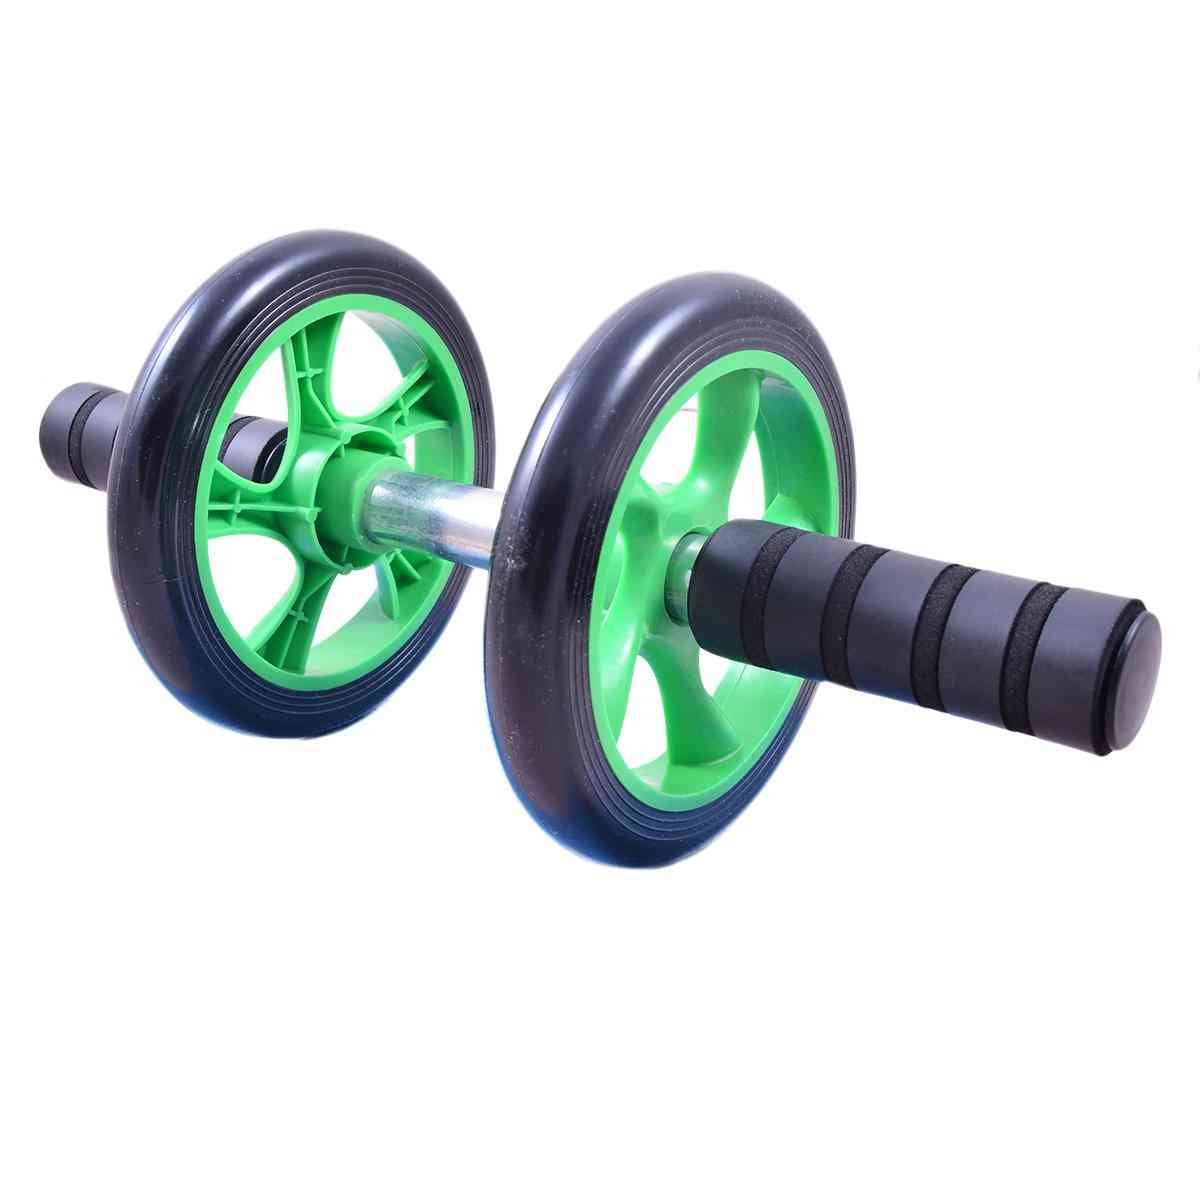 Double Wheels Abdominal Roller (For Arms and Shoulders and and Back and Trims and Tones Waistline)